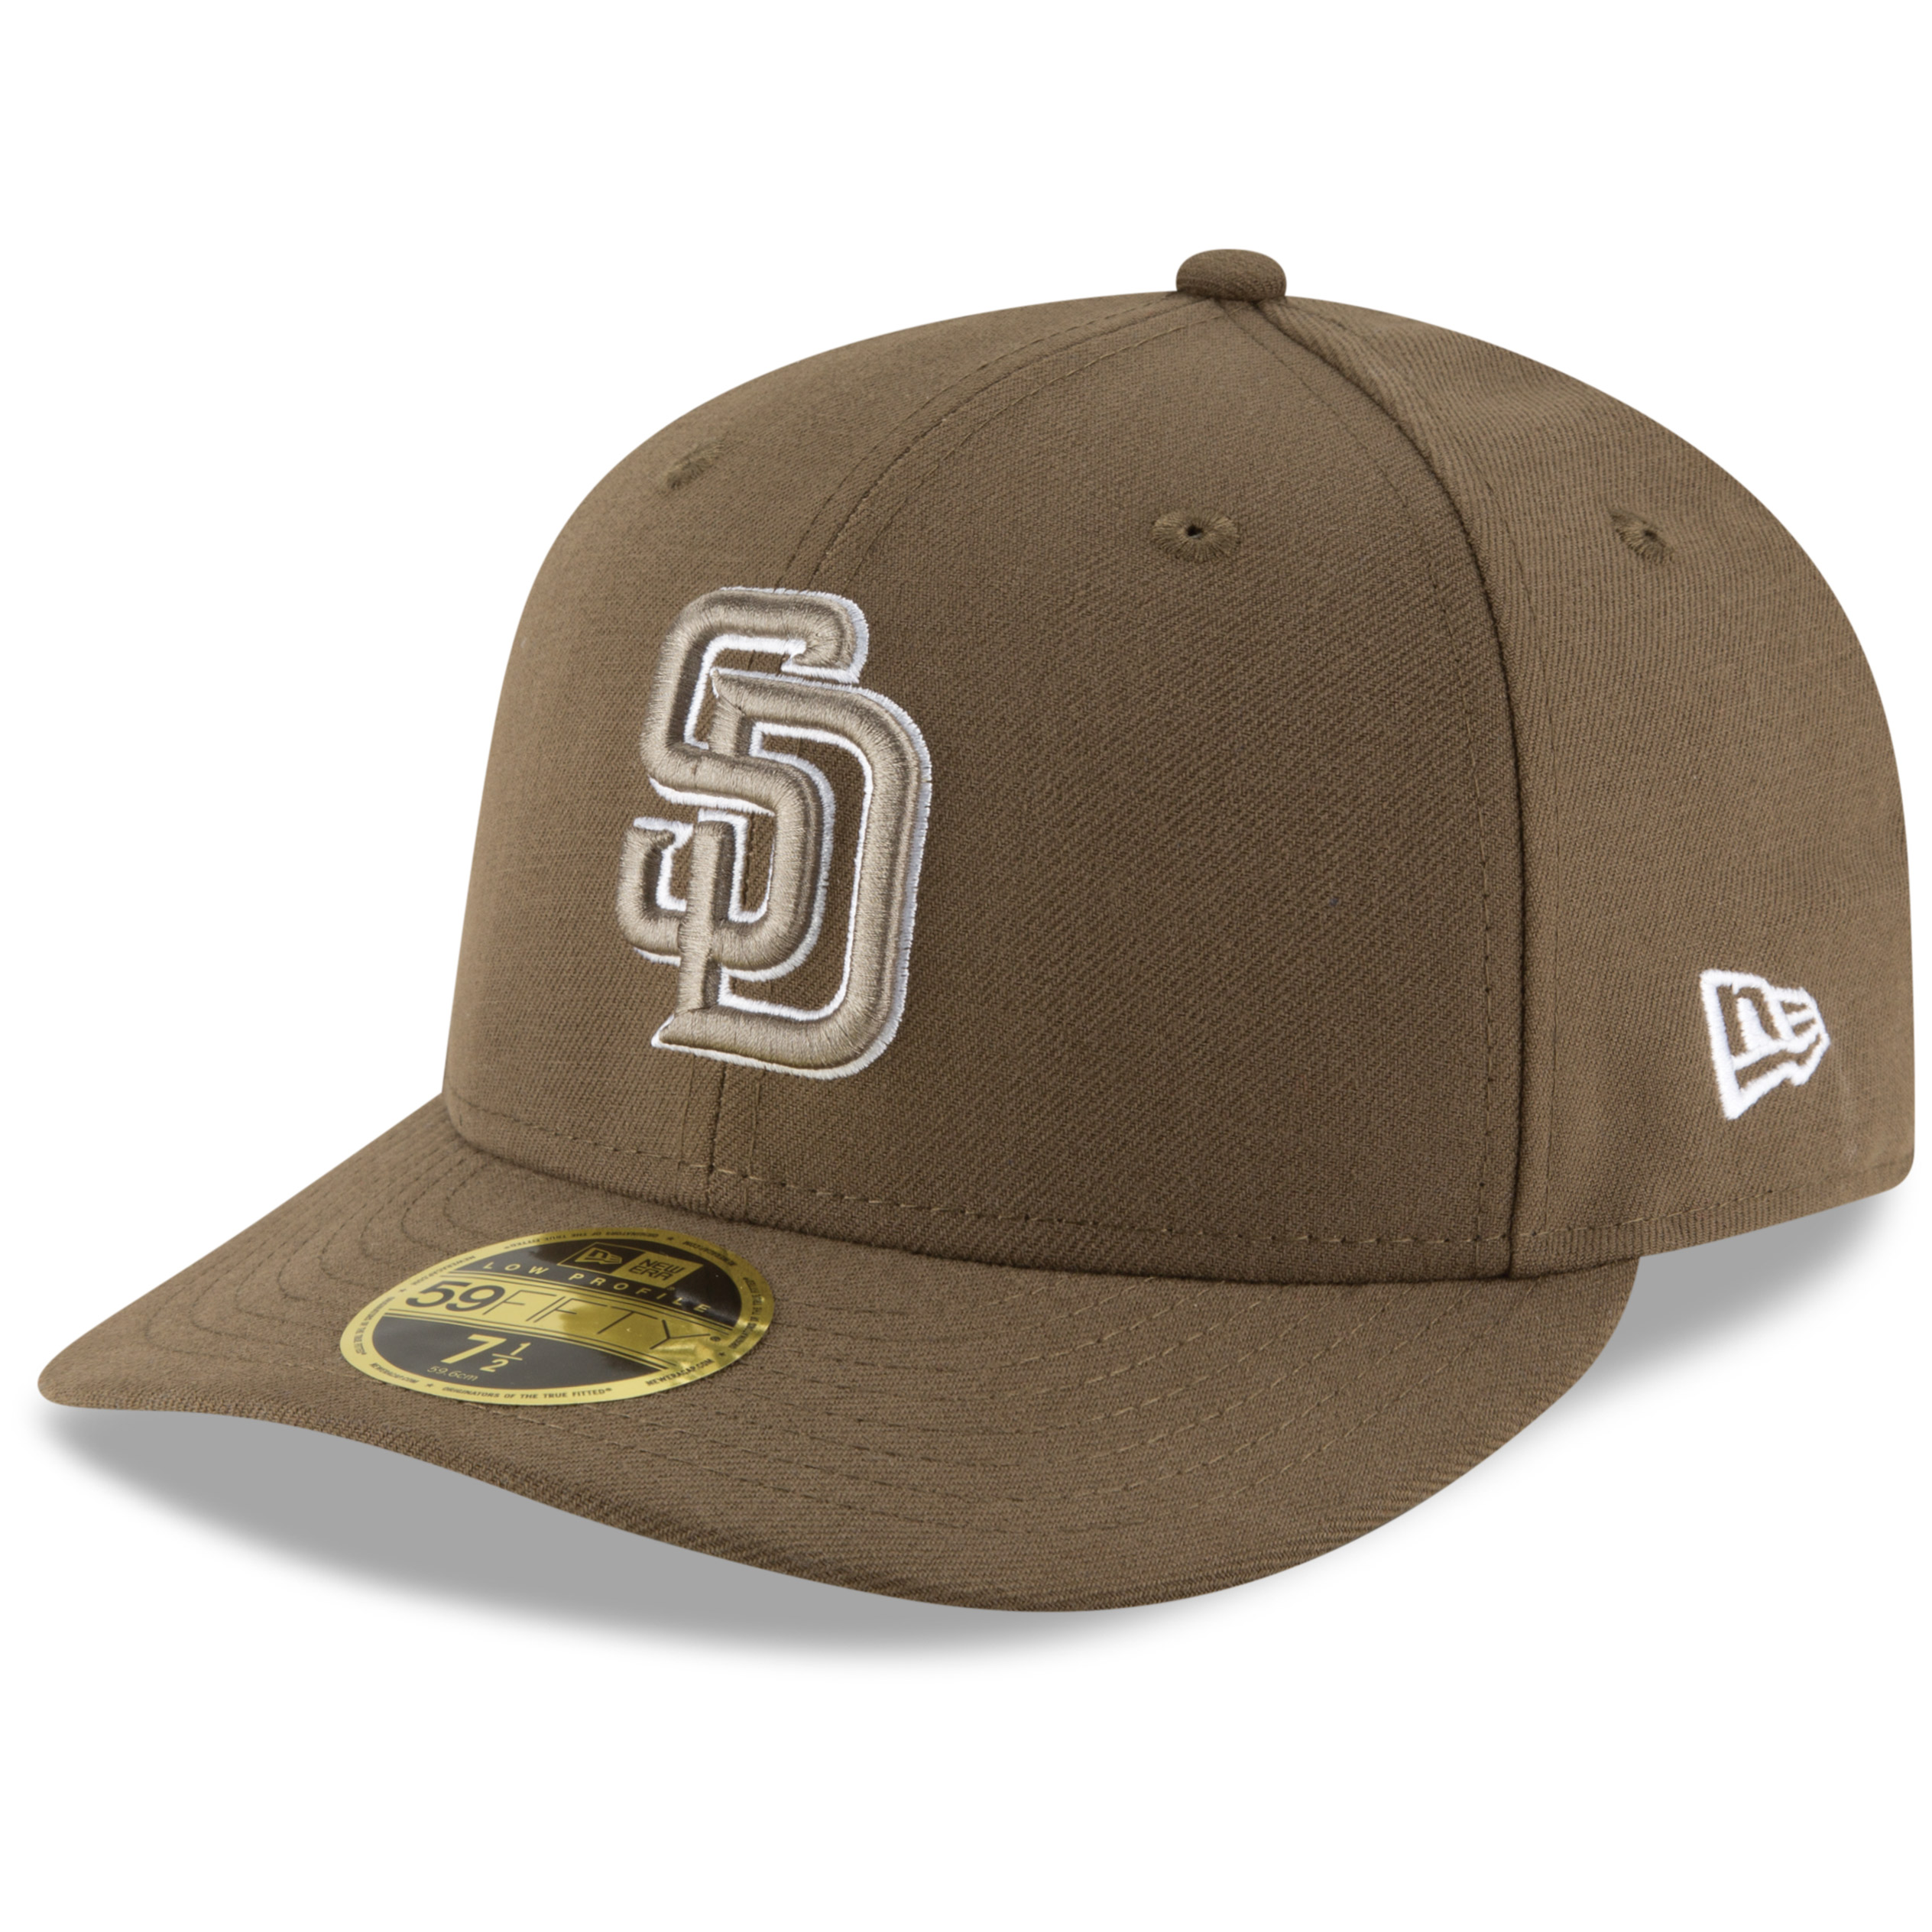 San Diego Padres New Era 2017 Authentic Collection On Field Low Profile 59FIFTY Fitted Hat - Brown